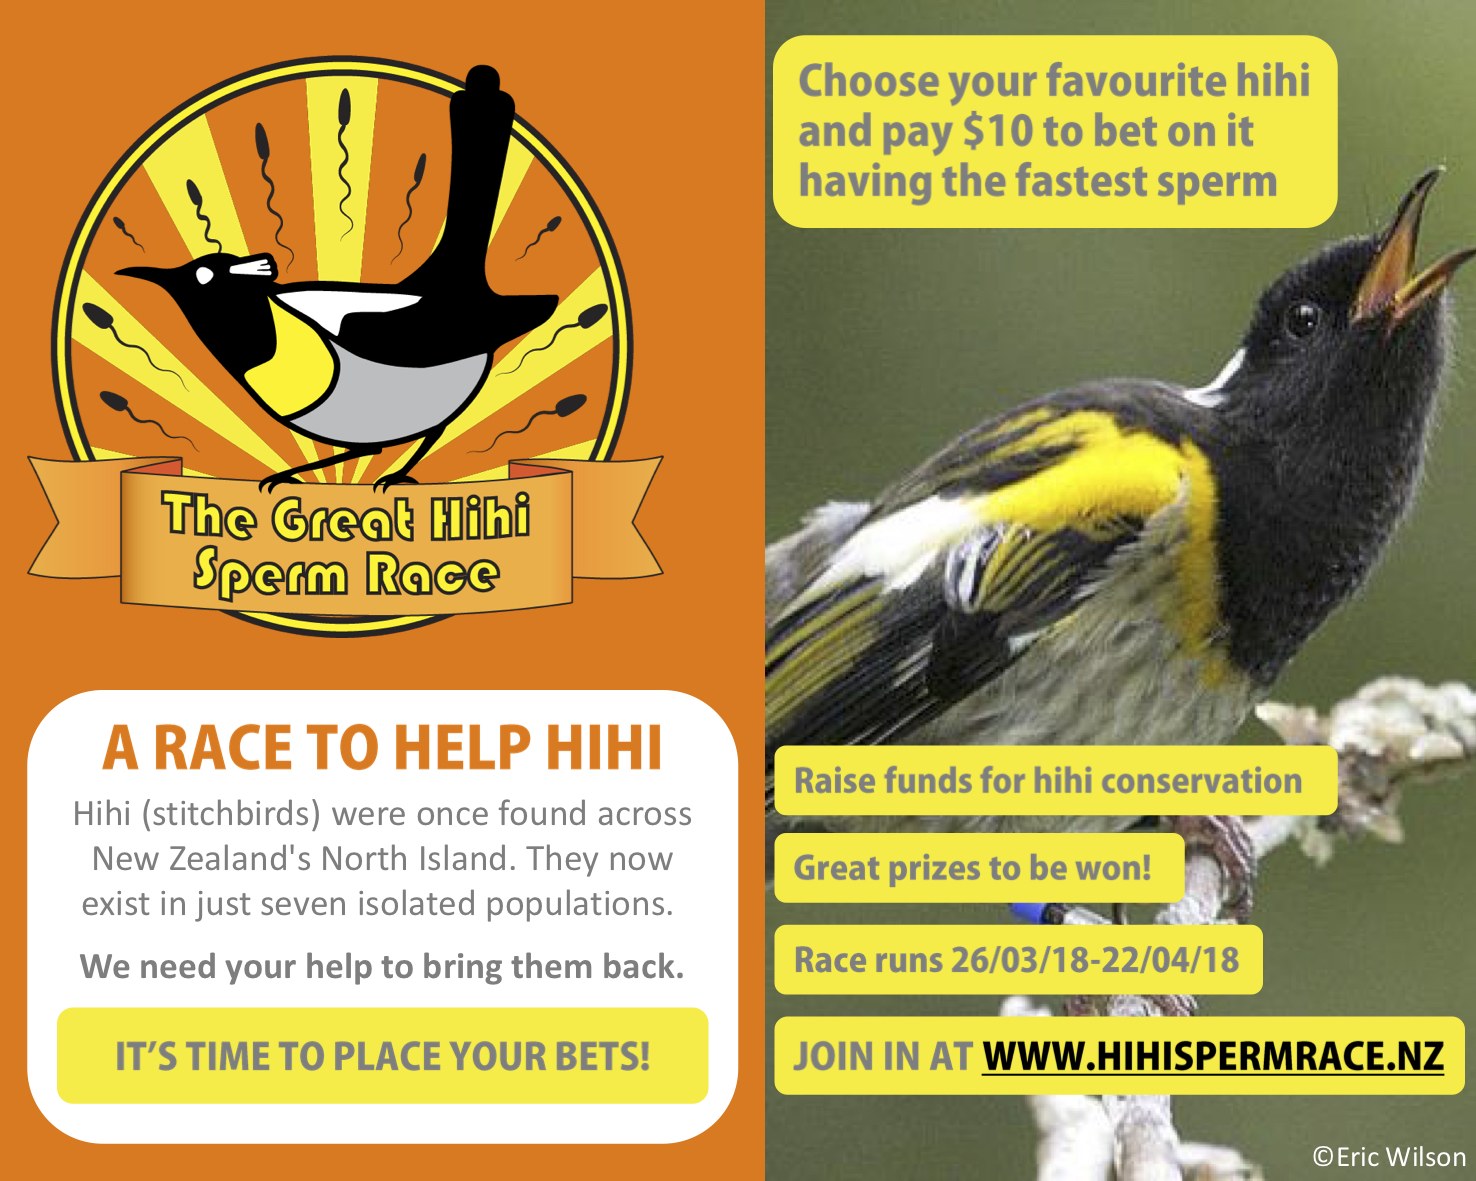 Great Hihi Sperm Race promo